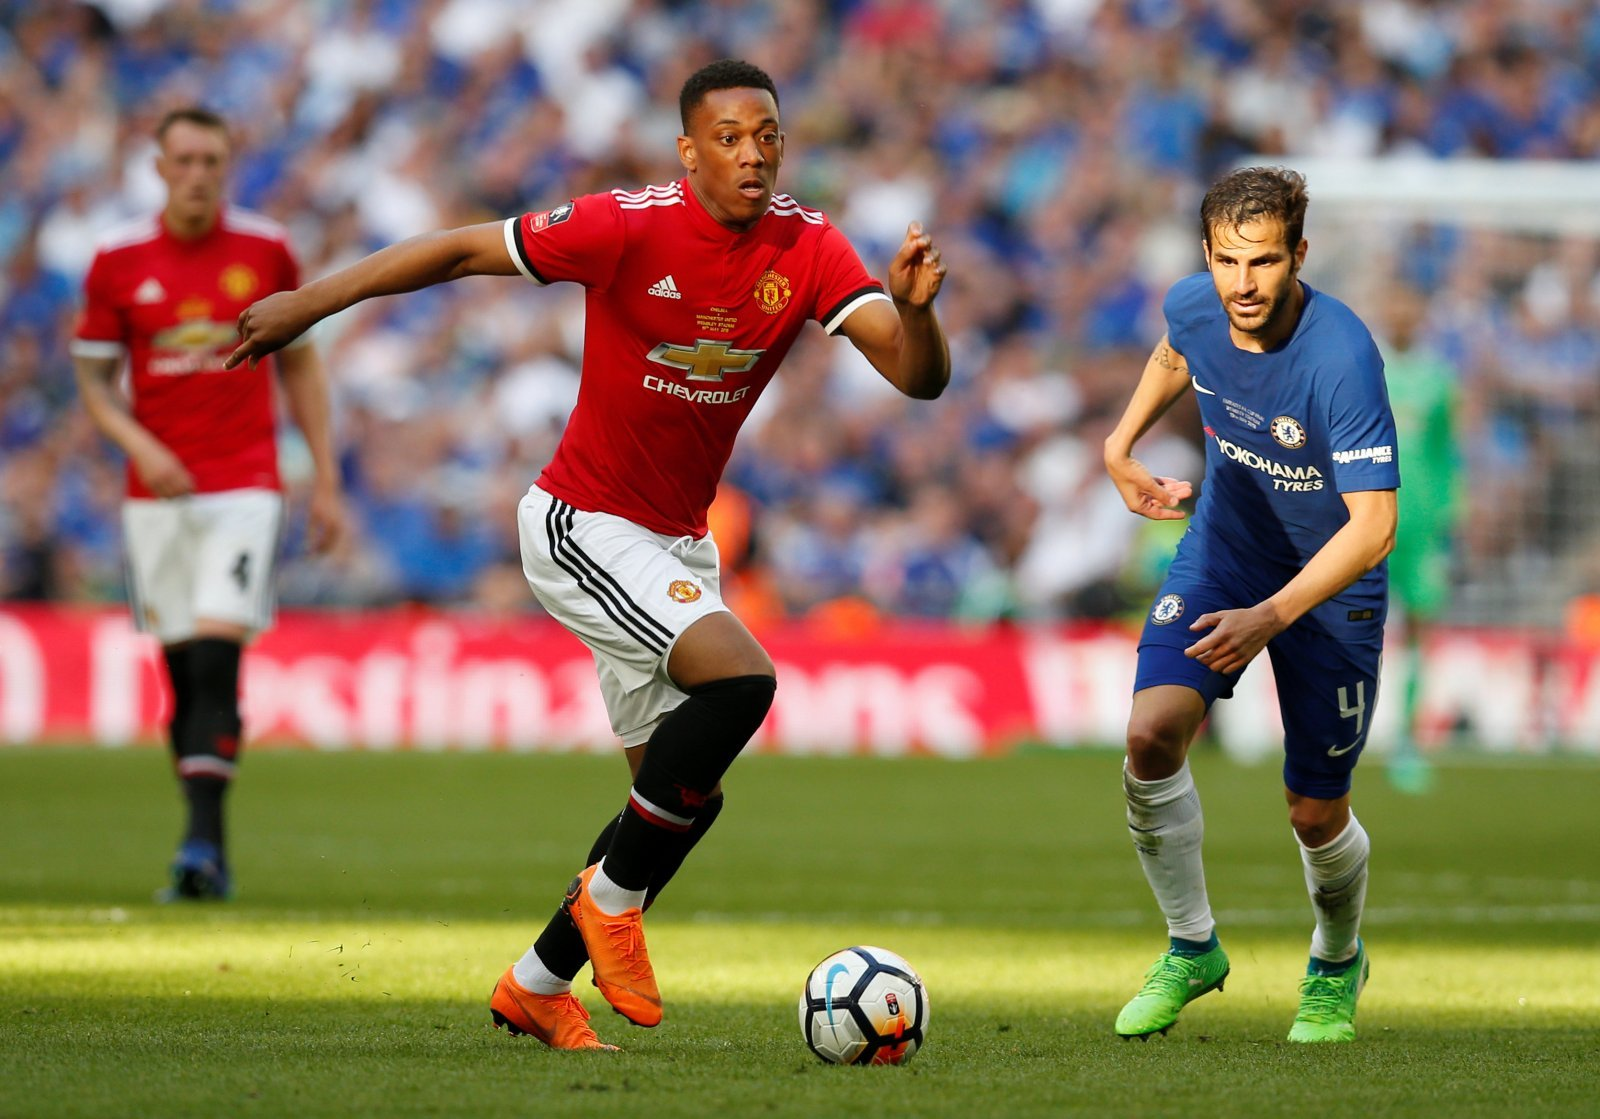 Tottenham fans call for Martial to sign after he's fined £180,000